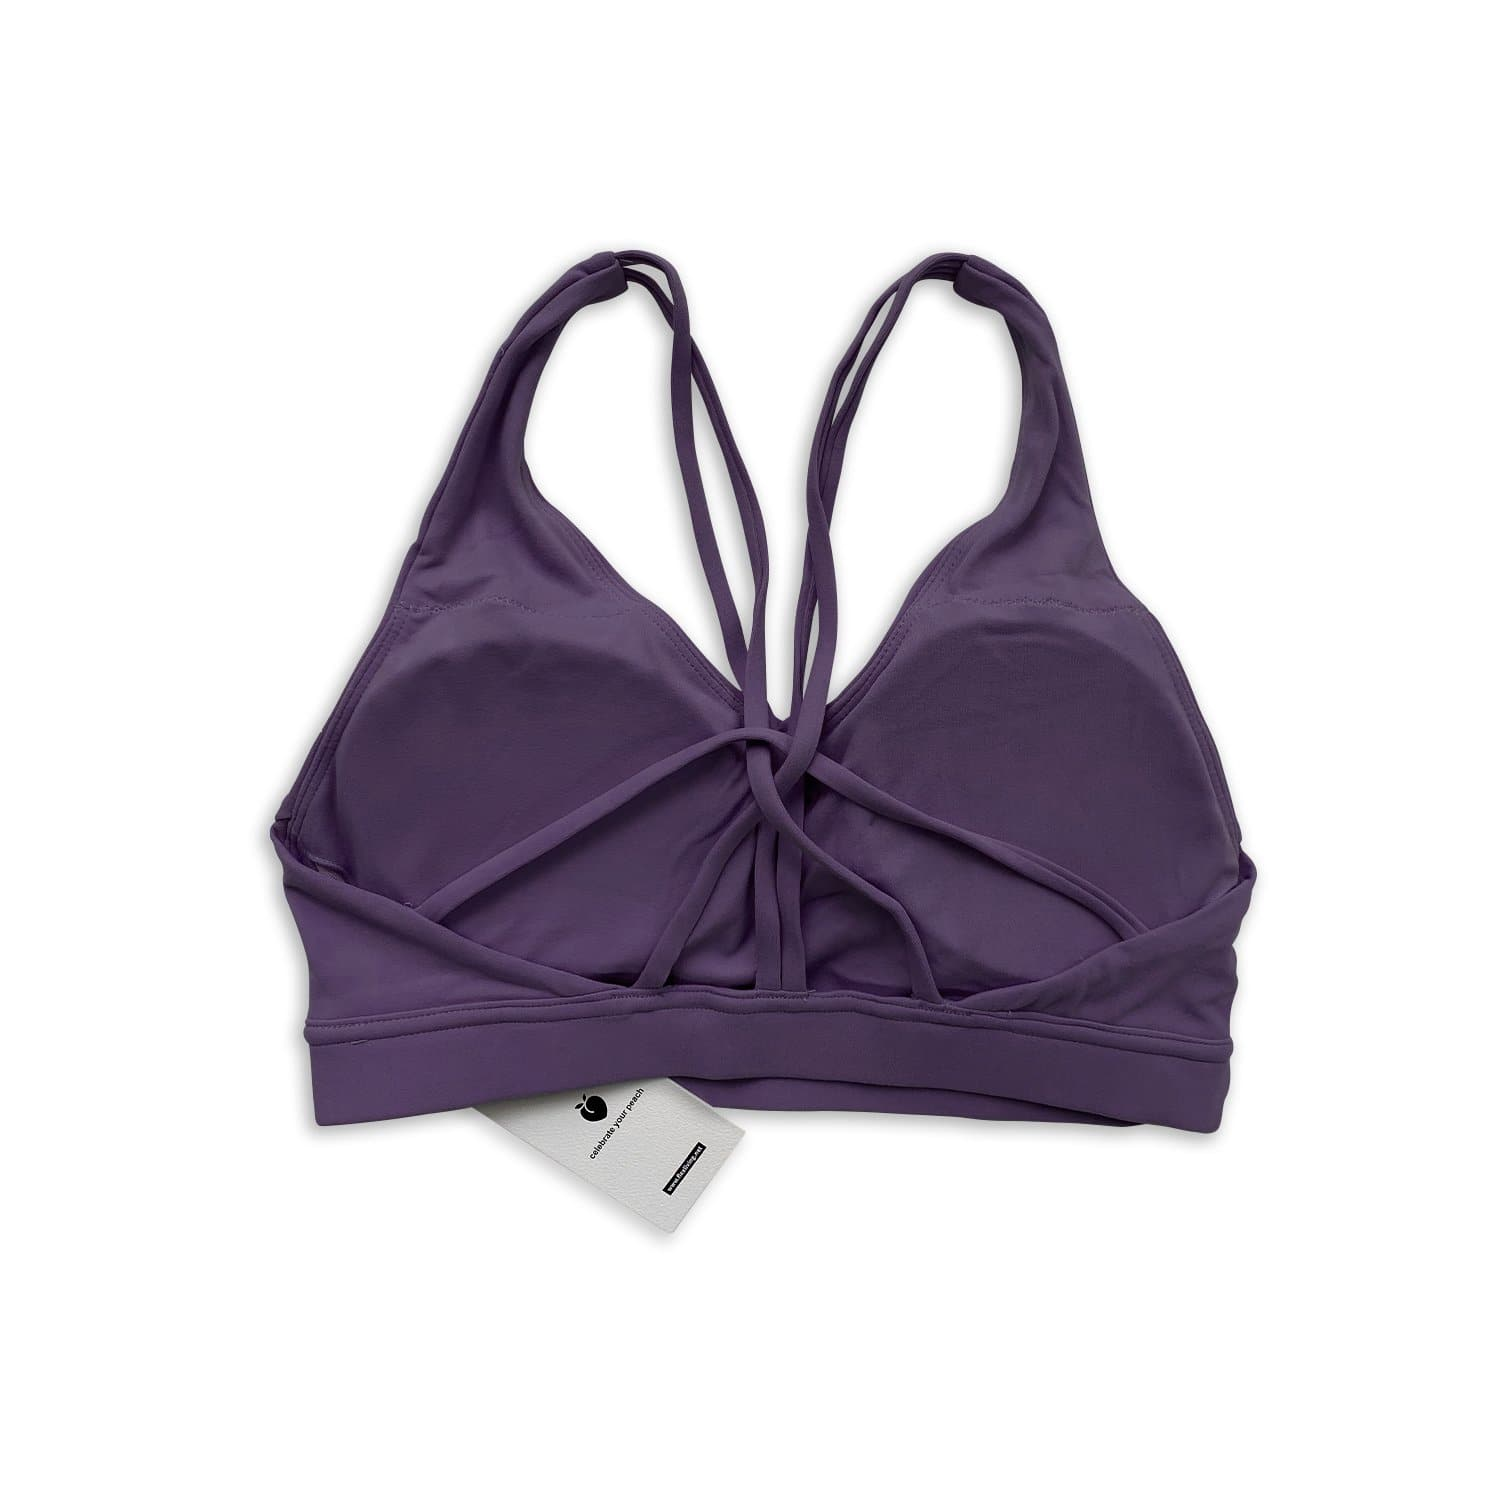 Twisty Bra - Violet